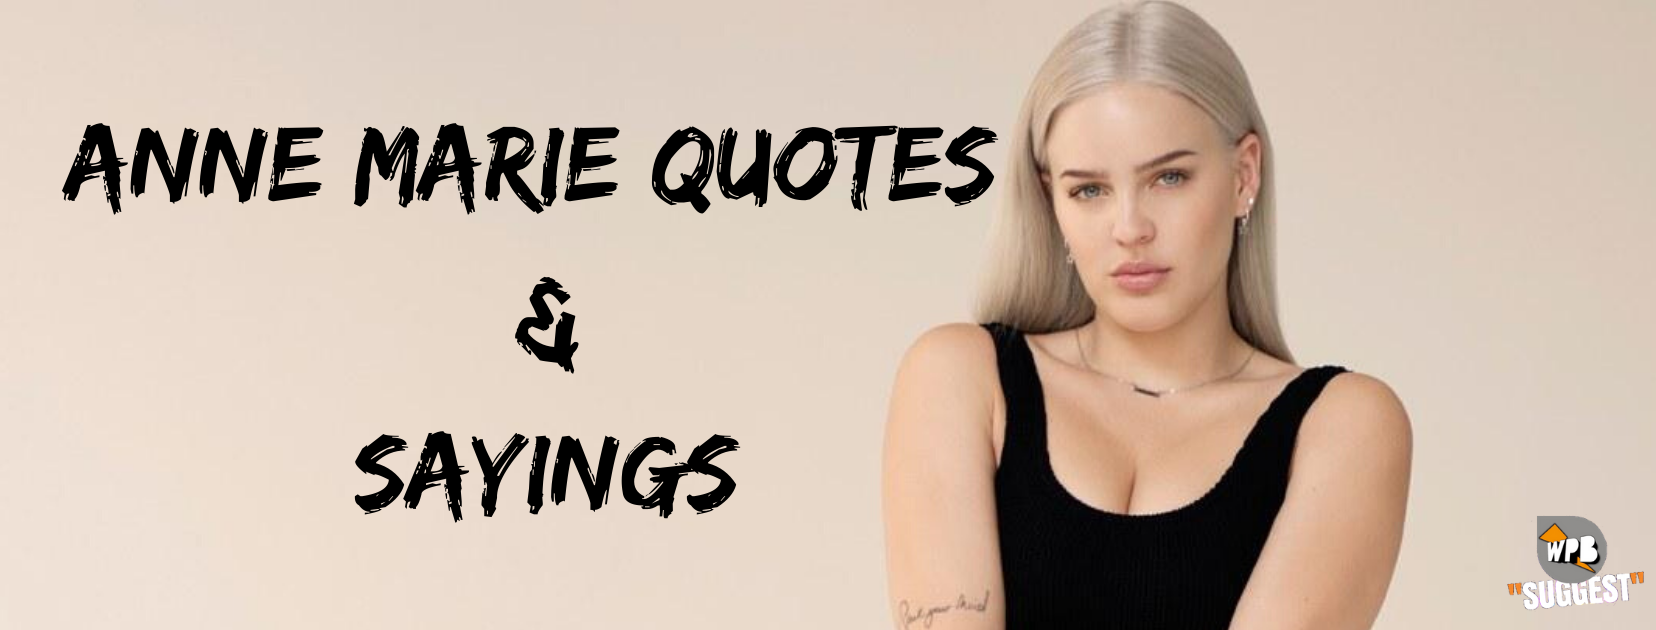 Annie Marie Quotes & Sayings